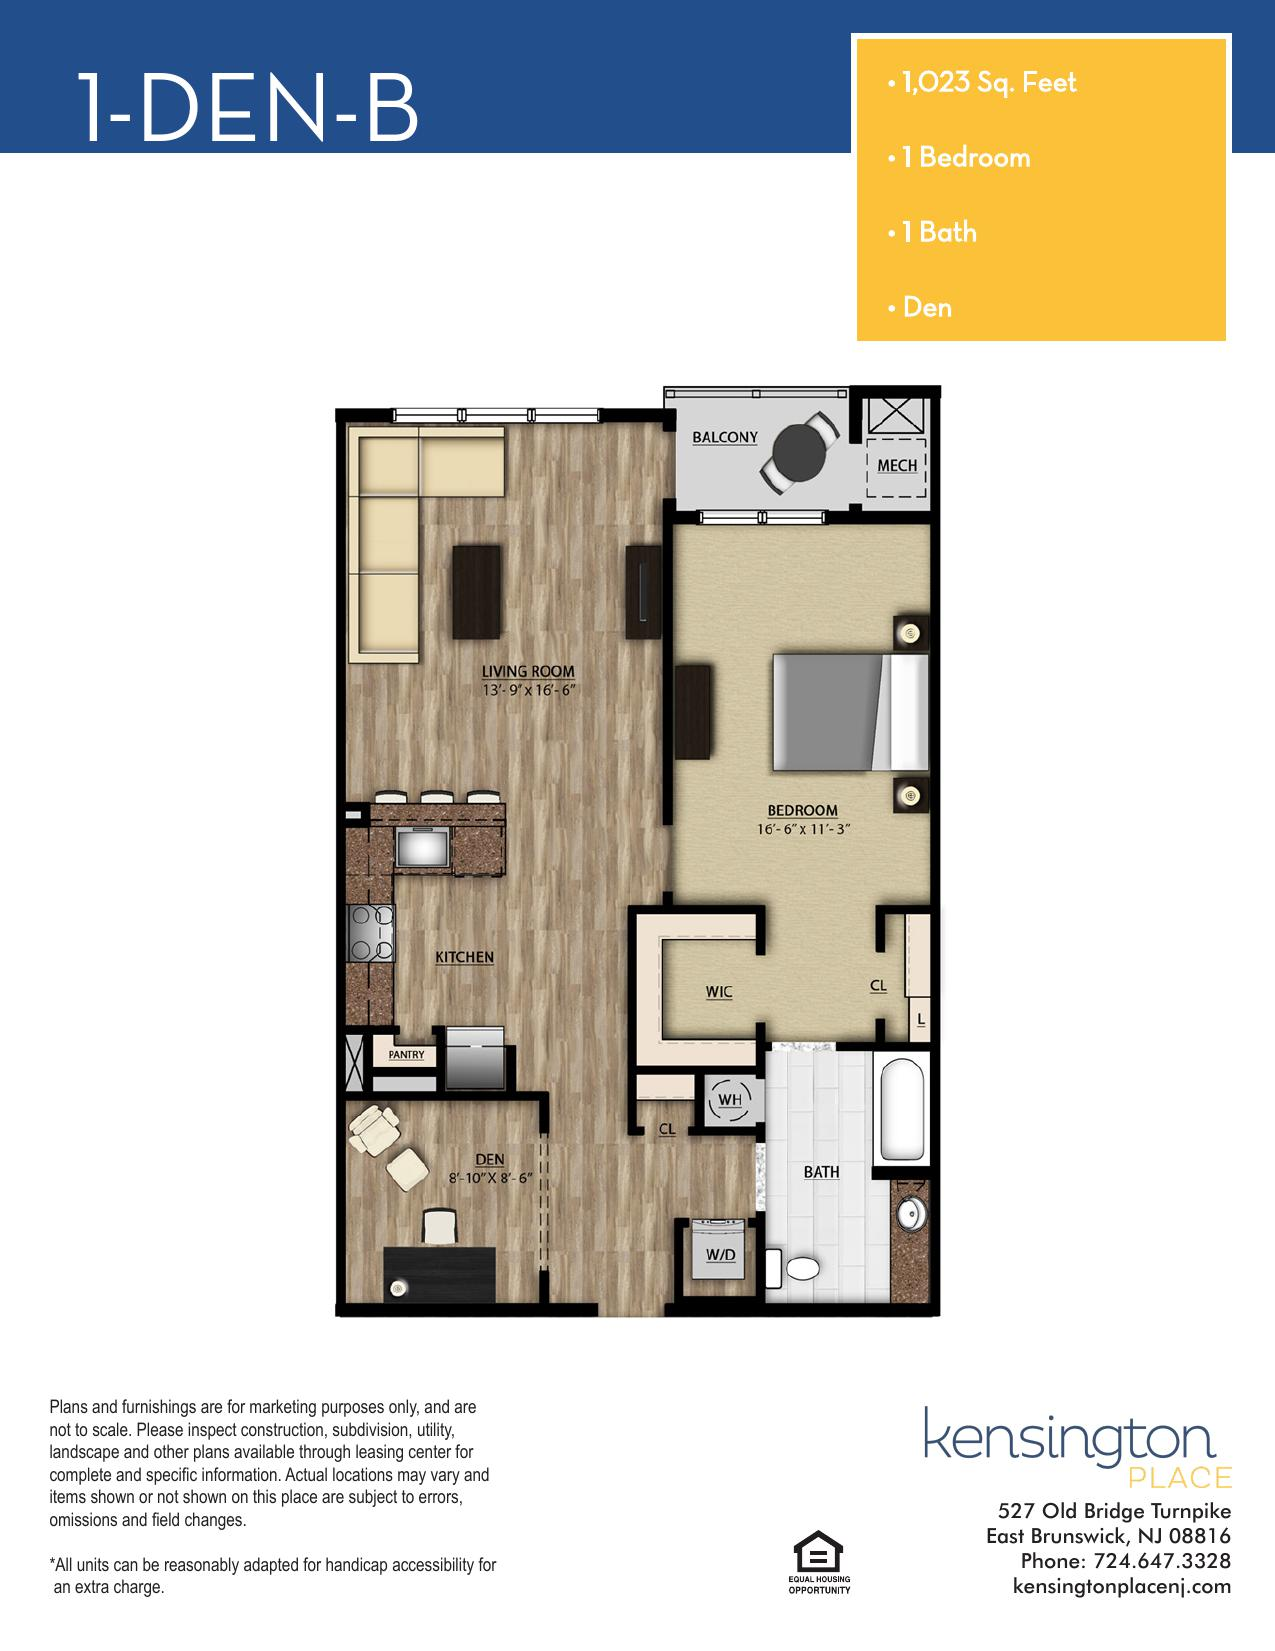 Kensington Place Apartment Floor Plan 1 DEN B